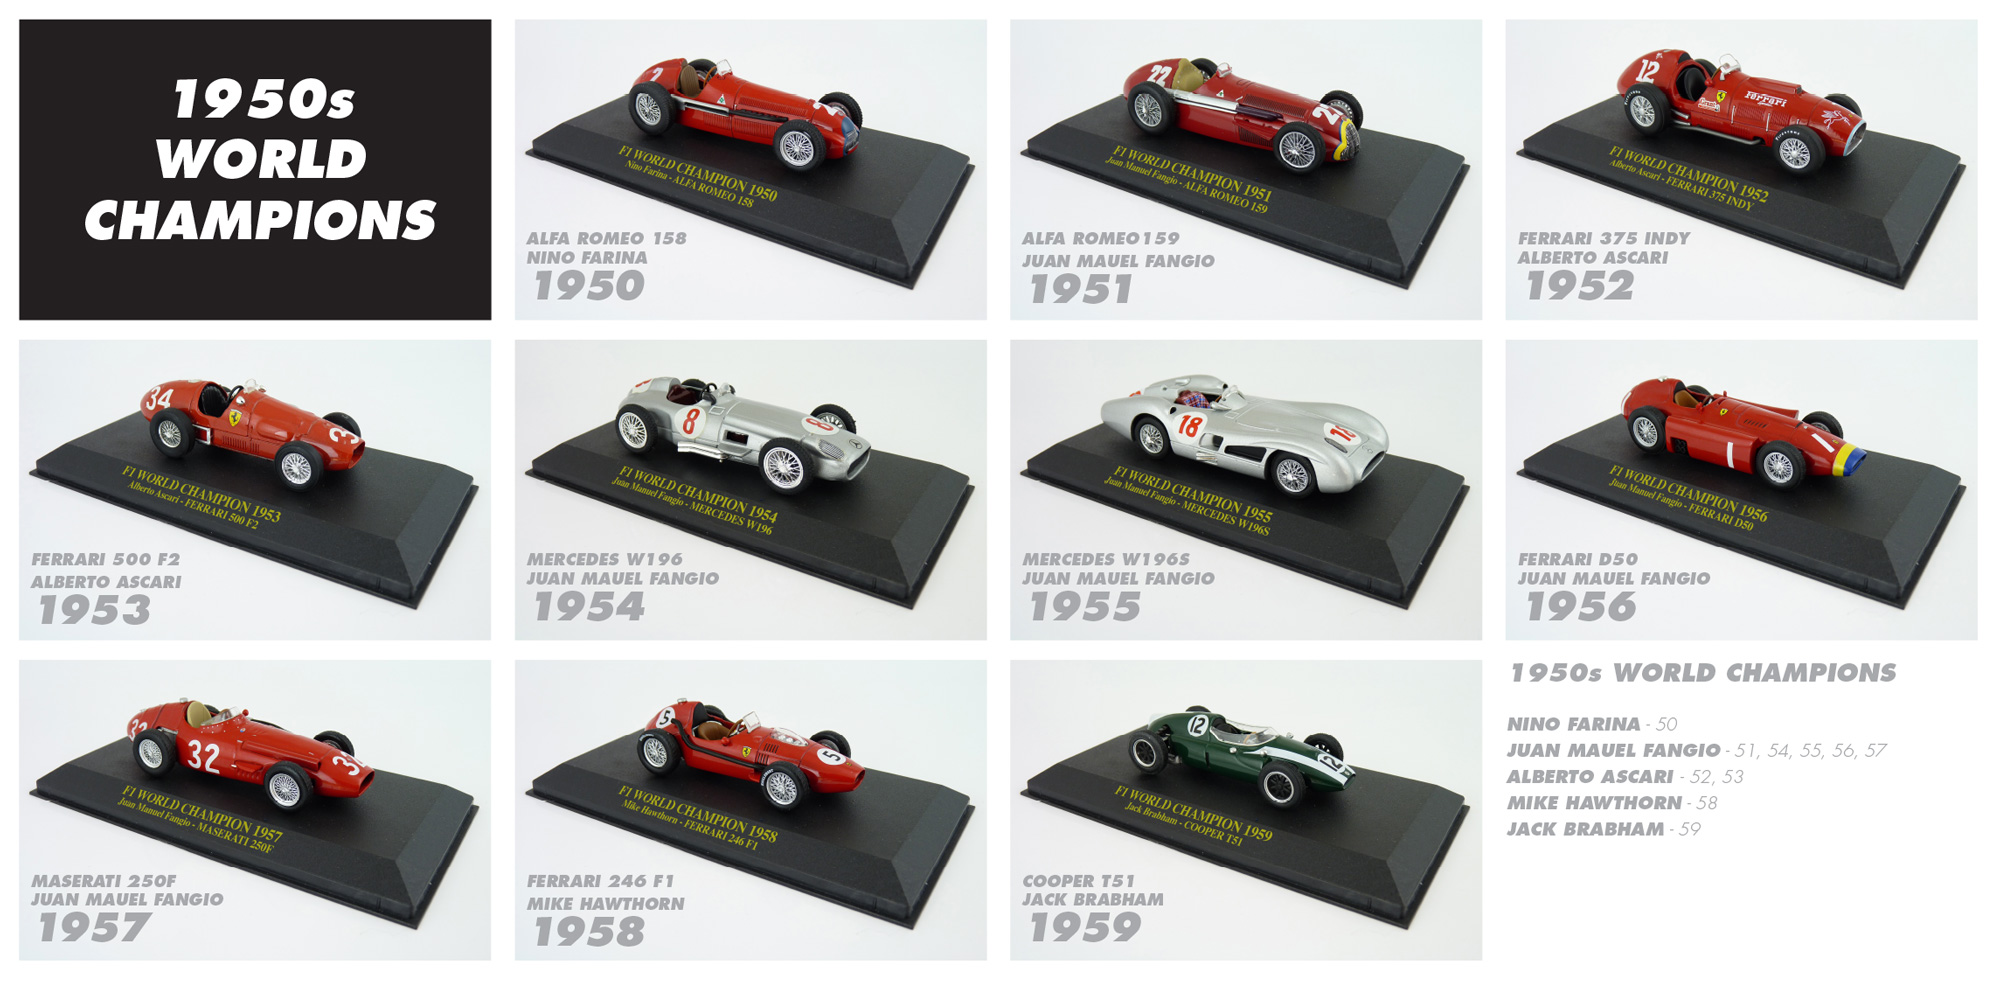 1950s F1 World Champions Diecast Collection